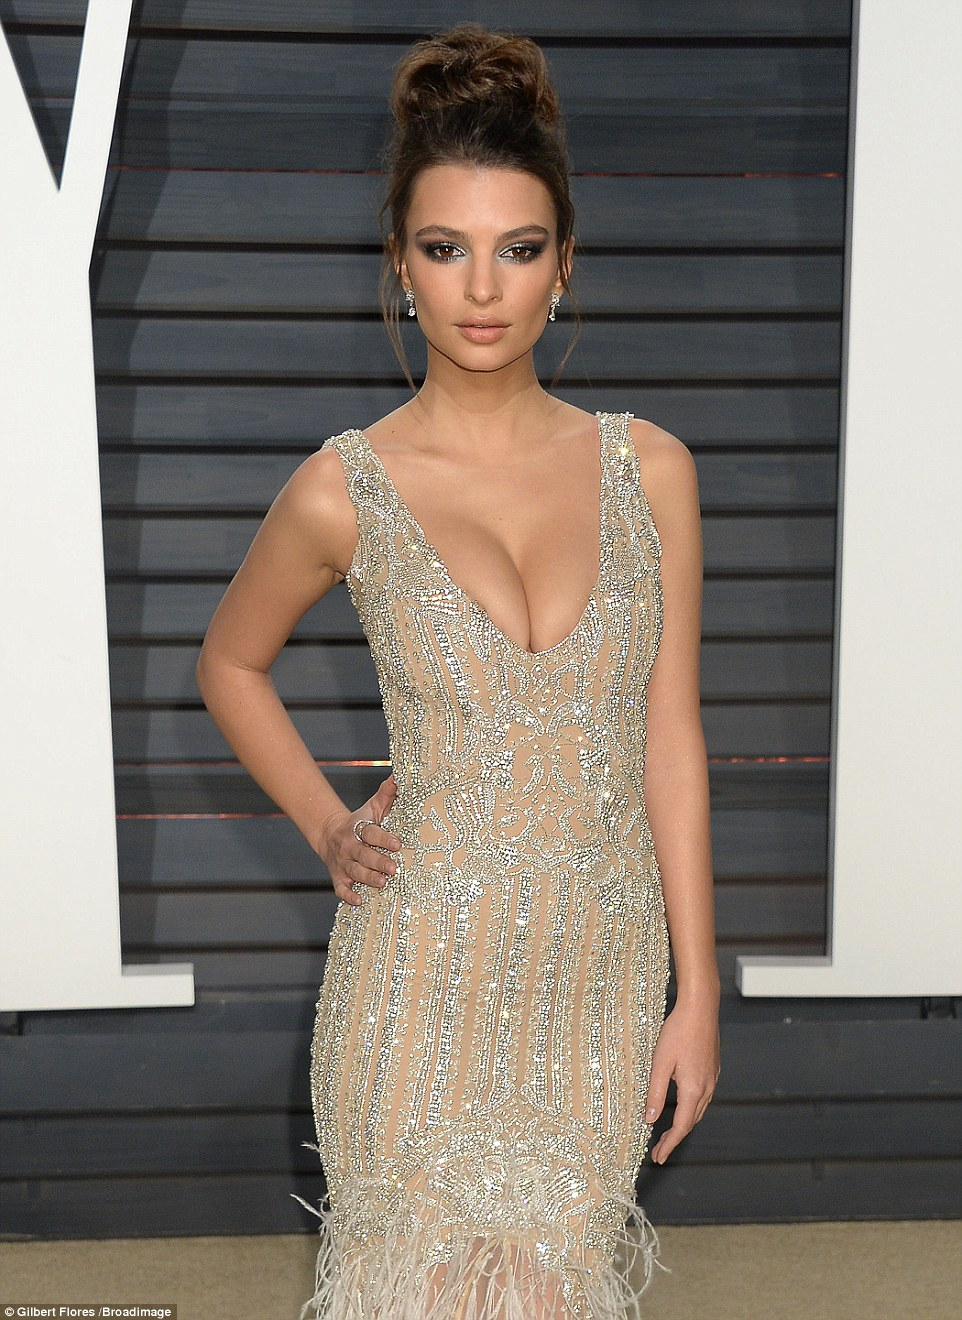 Emily Ratajkowski goes busty at the 2017 Vanity Fair Oscar Party